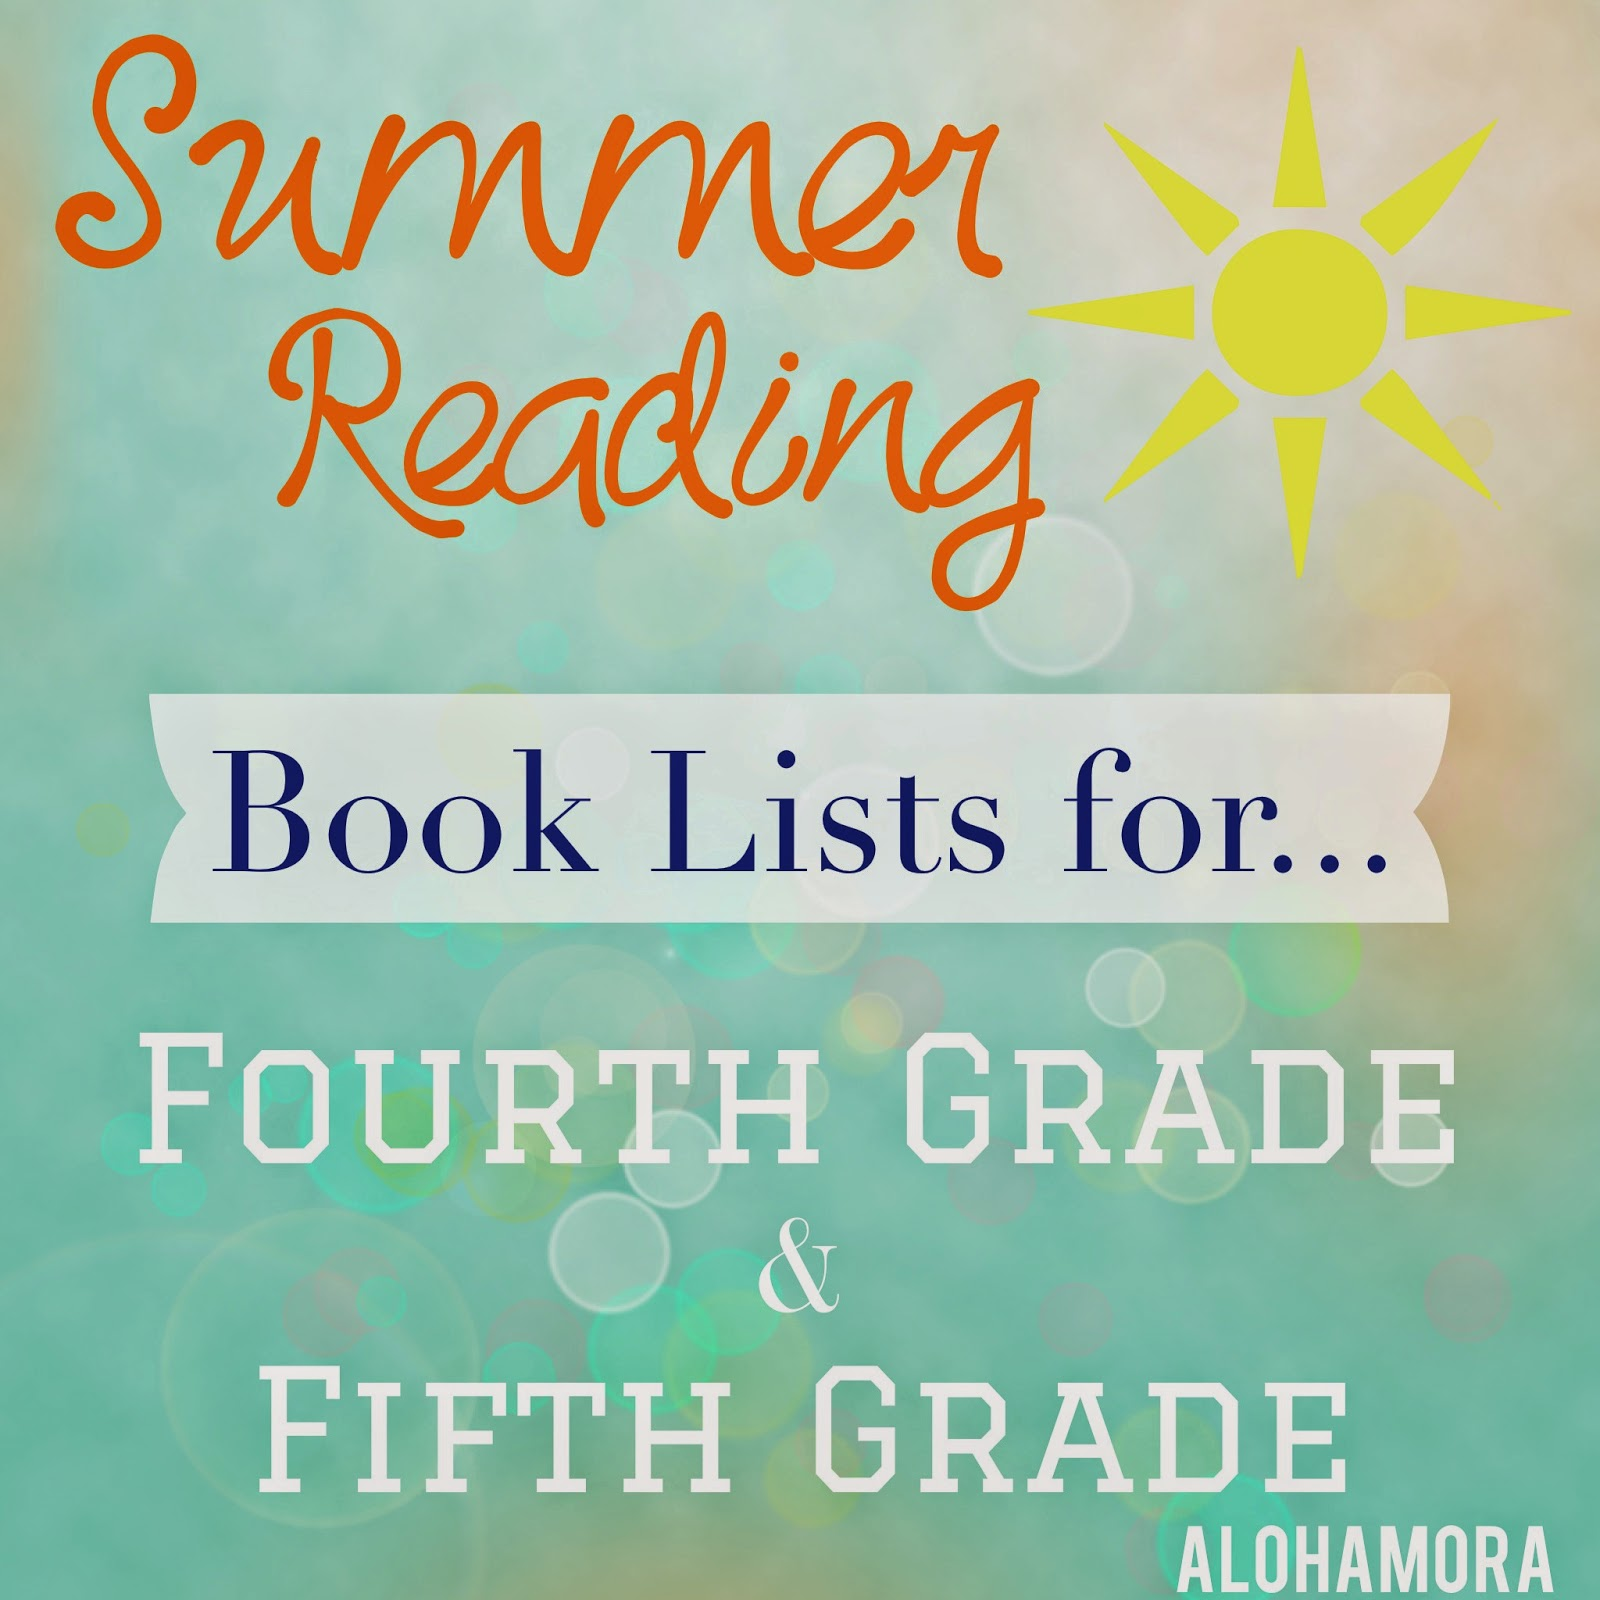 Summer Reading book lists for kids going into fourth (4th) and fifth (5th) grade.  Awesome chapter books that adults and even reluctant readers will enjoy!  Alohamora Open a Book  http://www.alohamoraopenabook.blogspot.com/